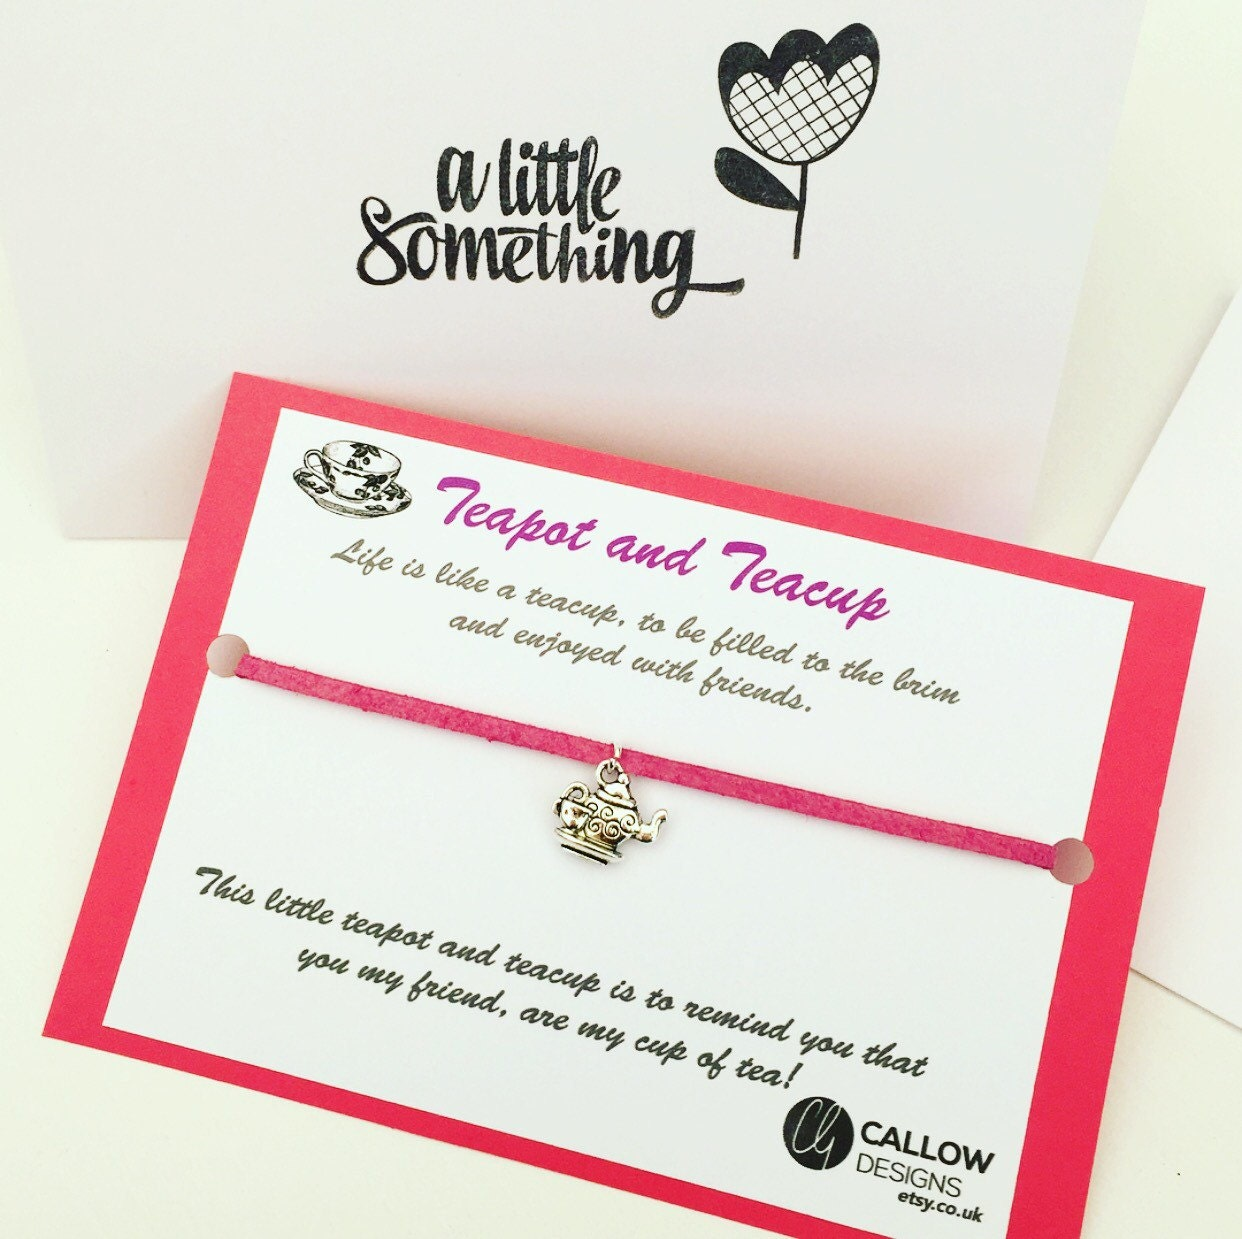 Teapot And Teacup Greetings Card And Charm Bracelet Meaning Quote